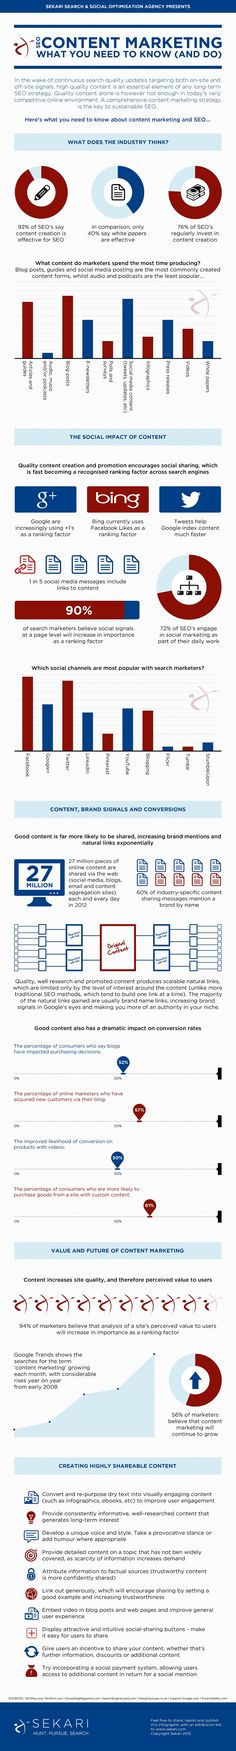 SEO ContentMarketing: What You Need to Know (and Do)